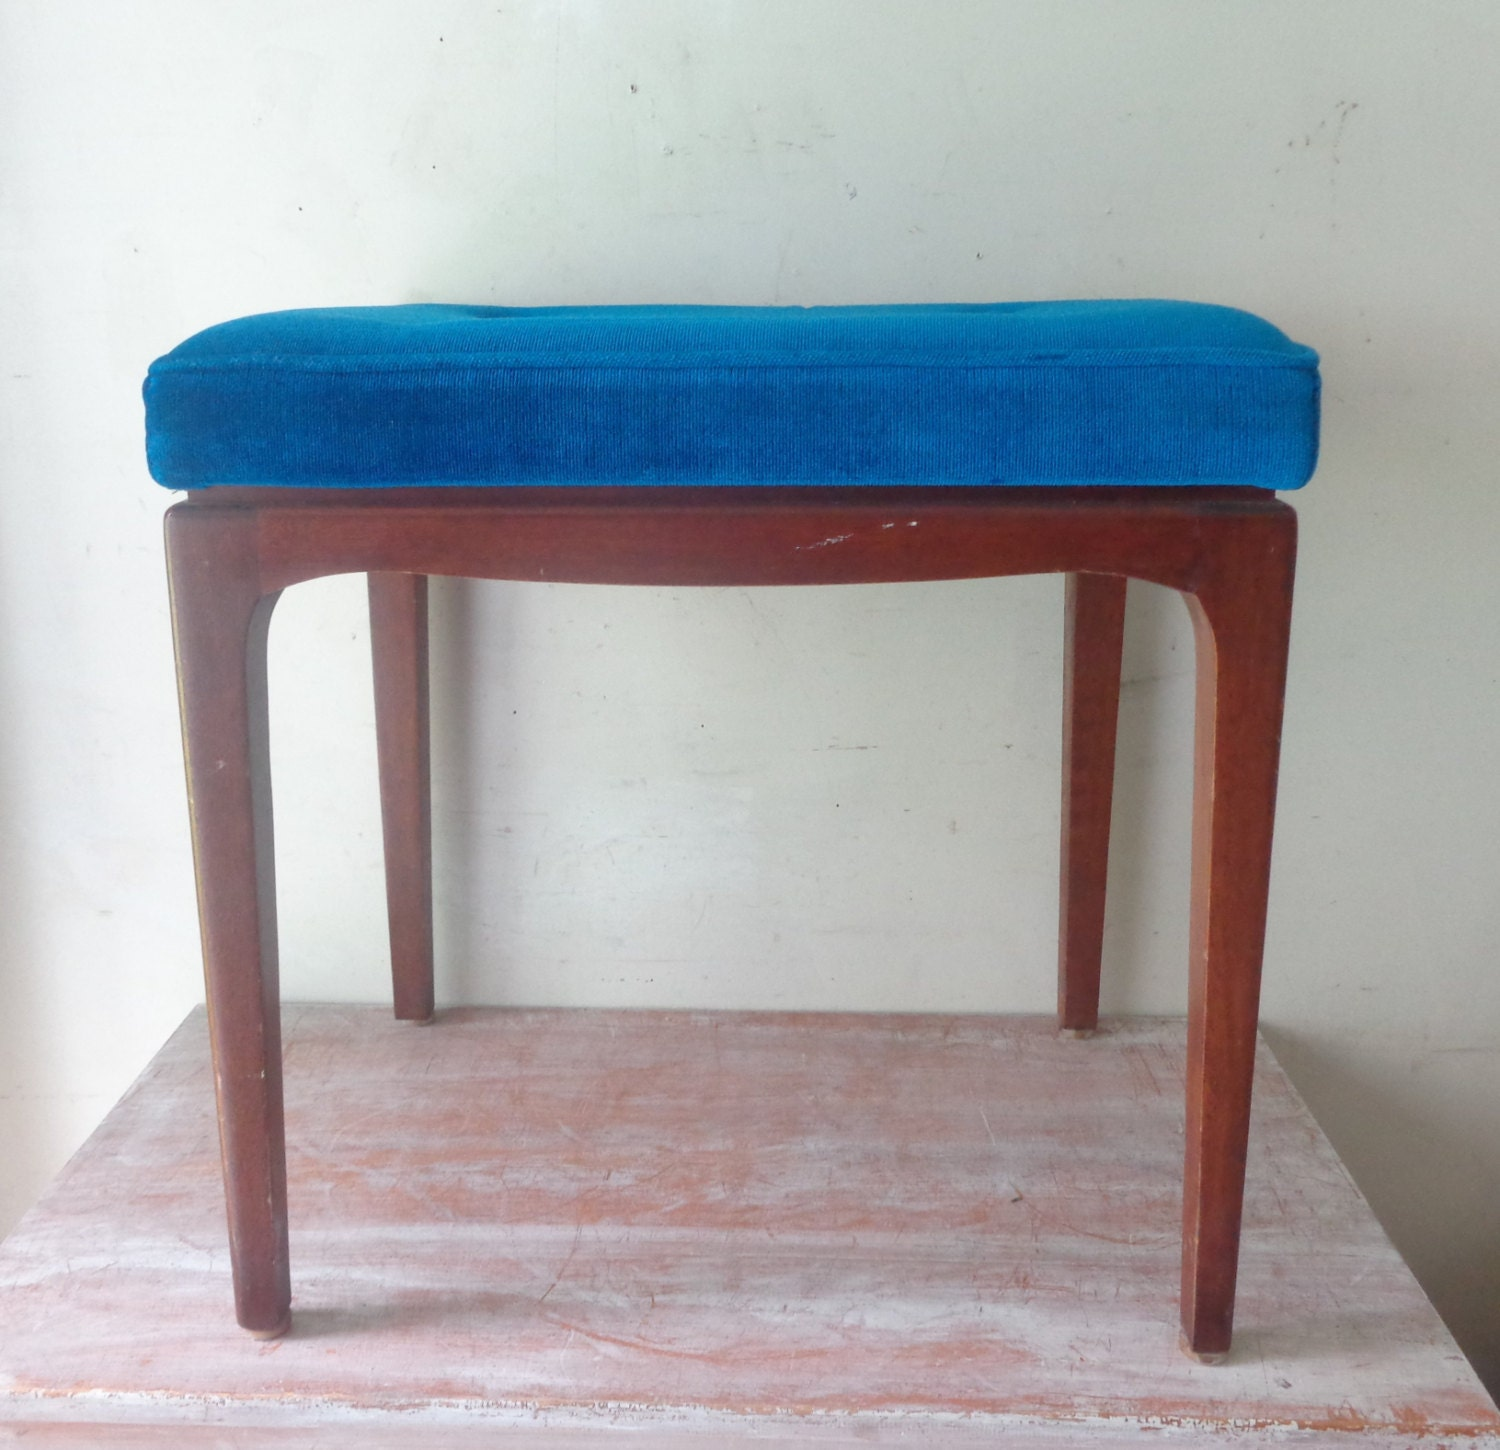 Retro Parker Furniture Bench Seat With Electric Blue